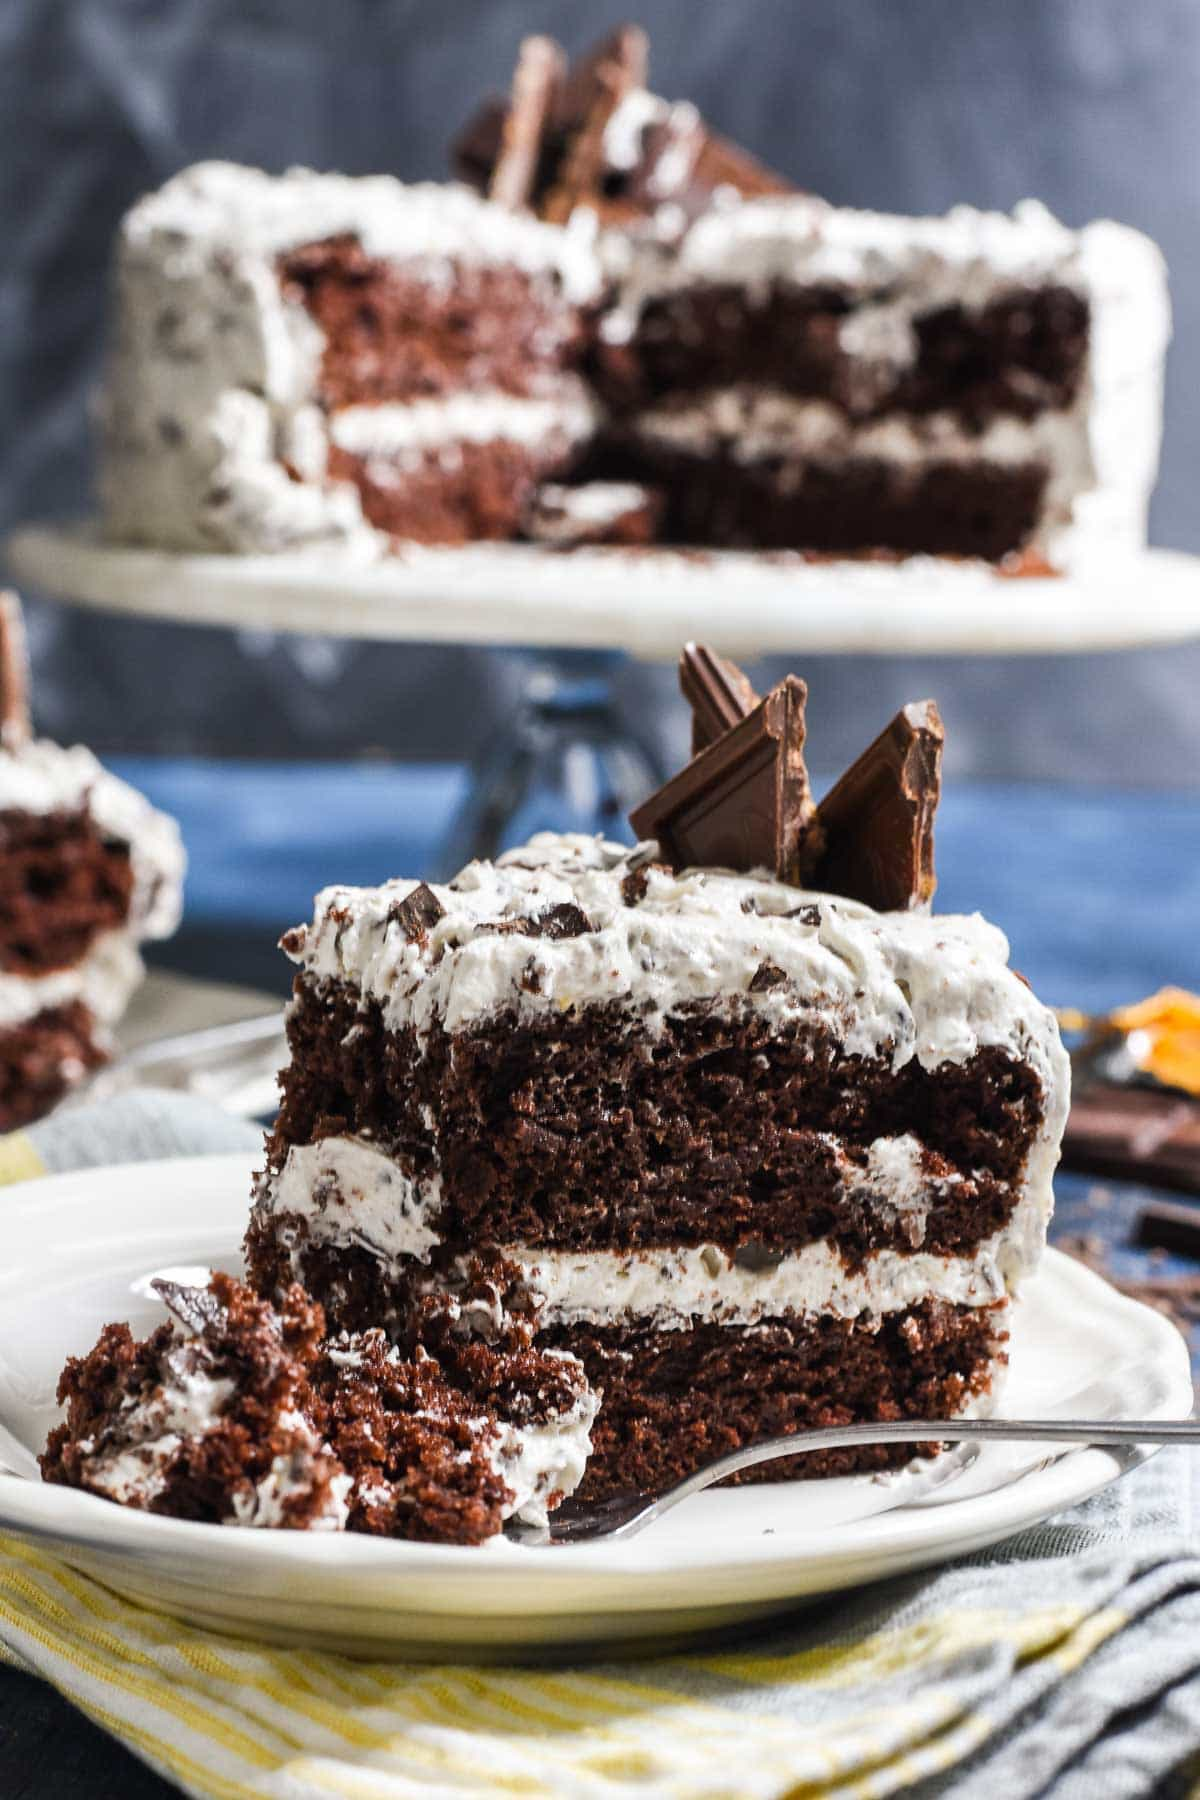 This Chocolate Candy Bar Cake starts with a fluffy chocolate cake layered with the fluffiest whipped frosting studded with your favorite candy bars!